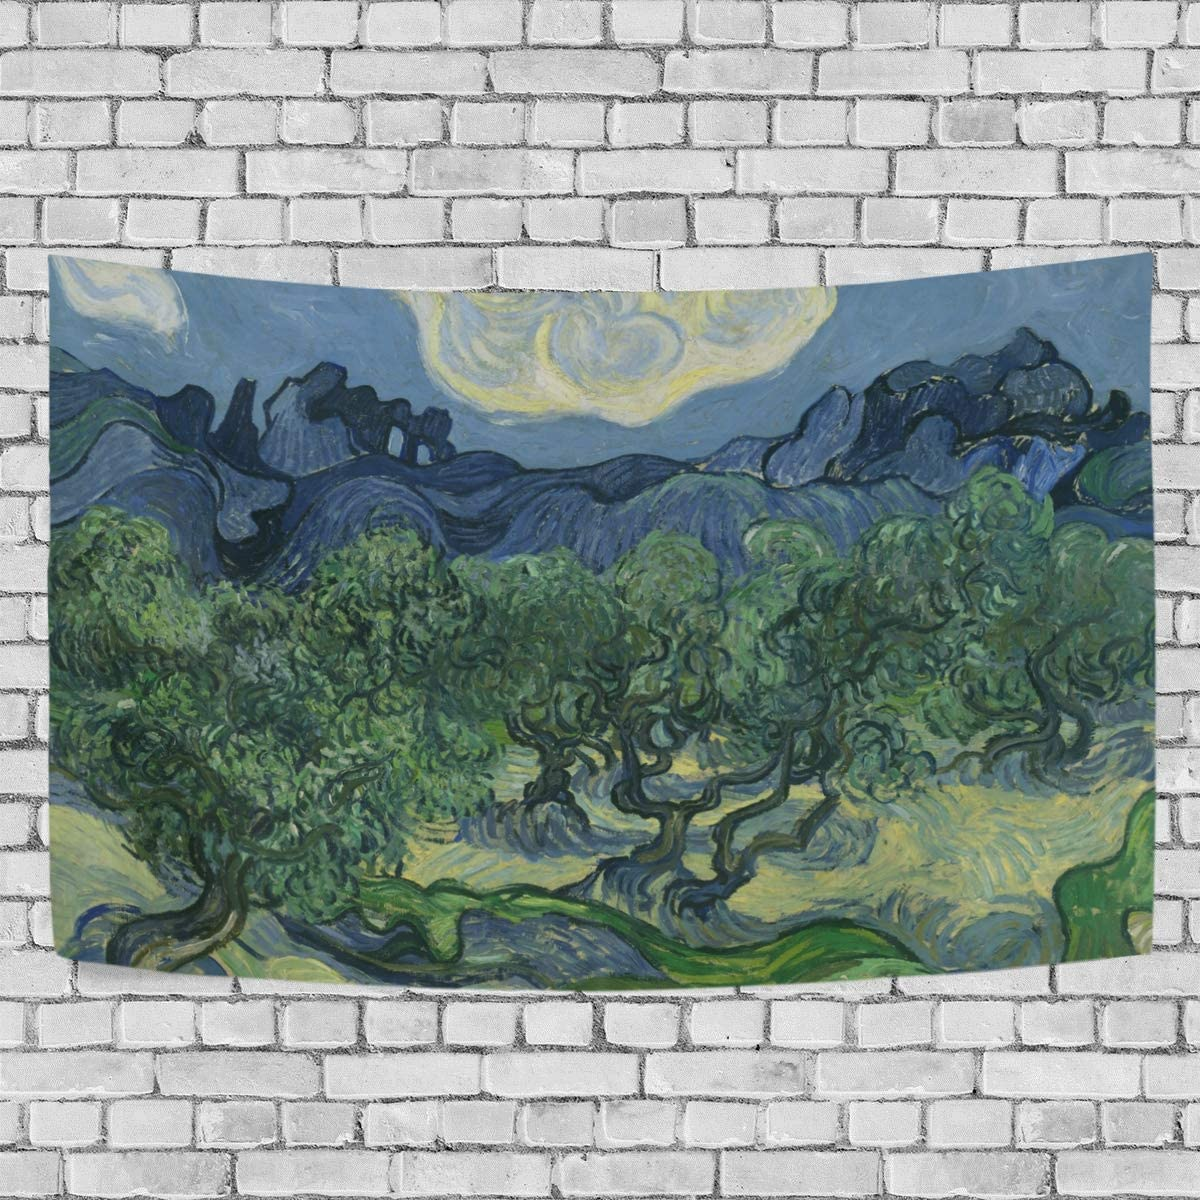 Tapestry Wall Hanging Van Gogh Pattern Wall Blanket for Wall Art Large Tapestry Decor for Living Room and Bedroom 90 x 60 Inches